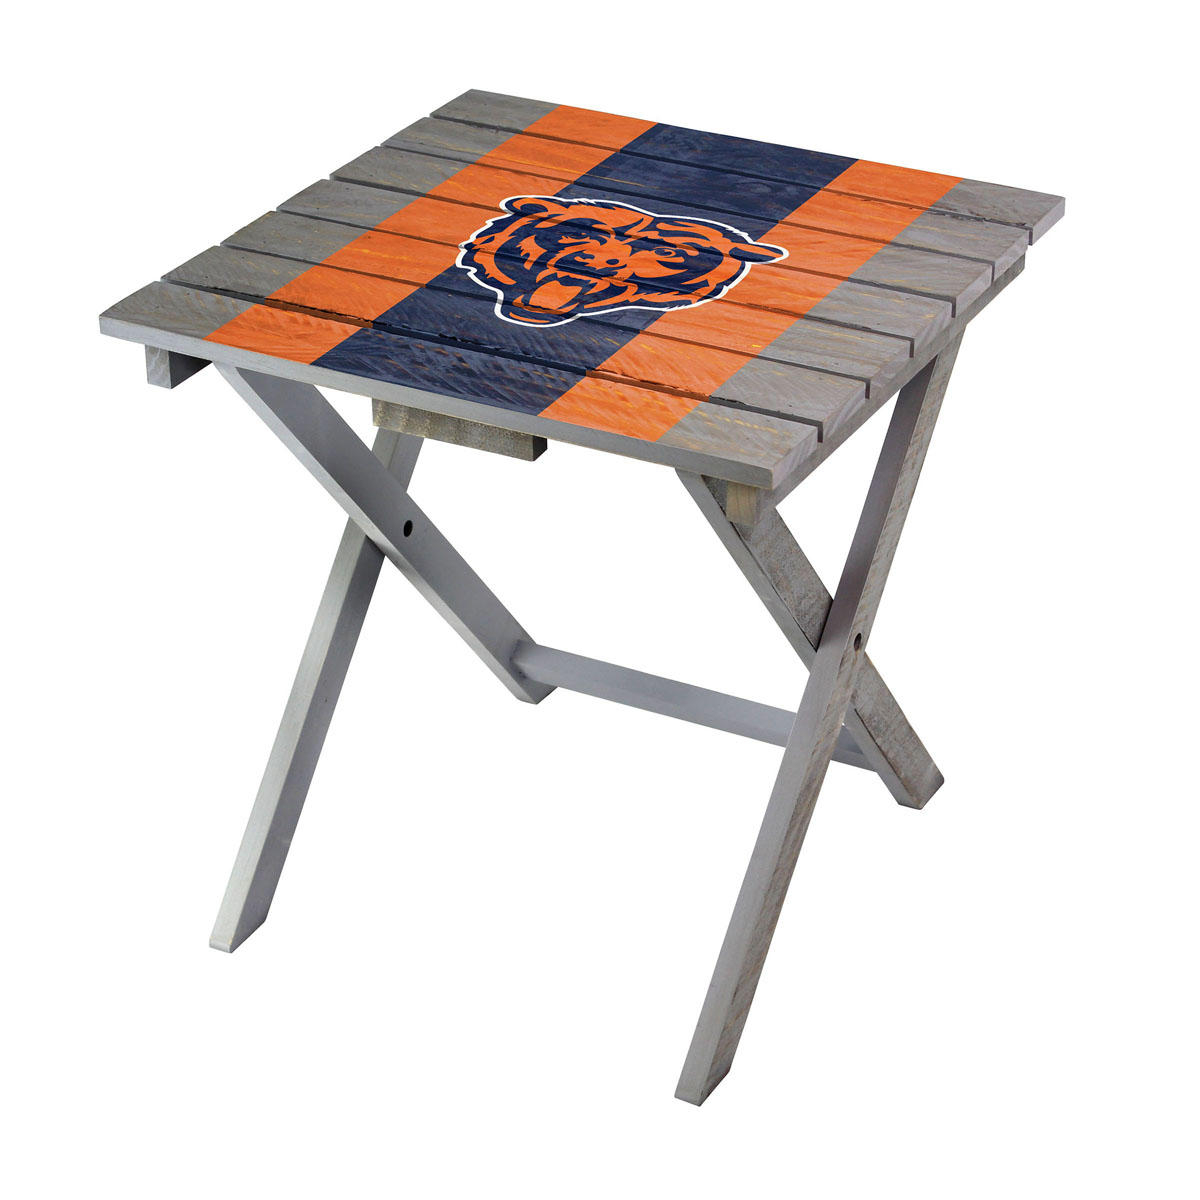 Nfl Chicago Bears Folding Adirondack Table 544 1019 Area Rug Free Shipping